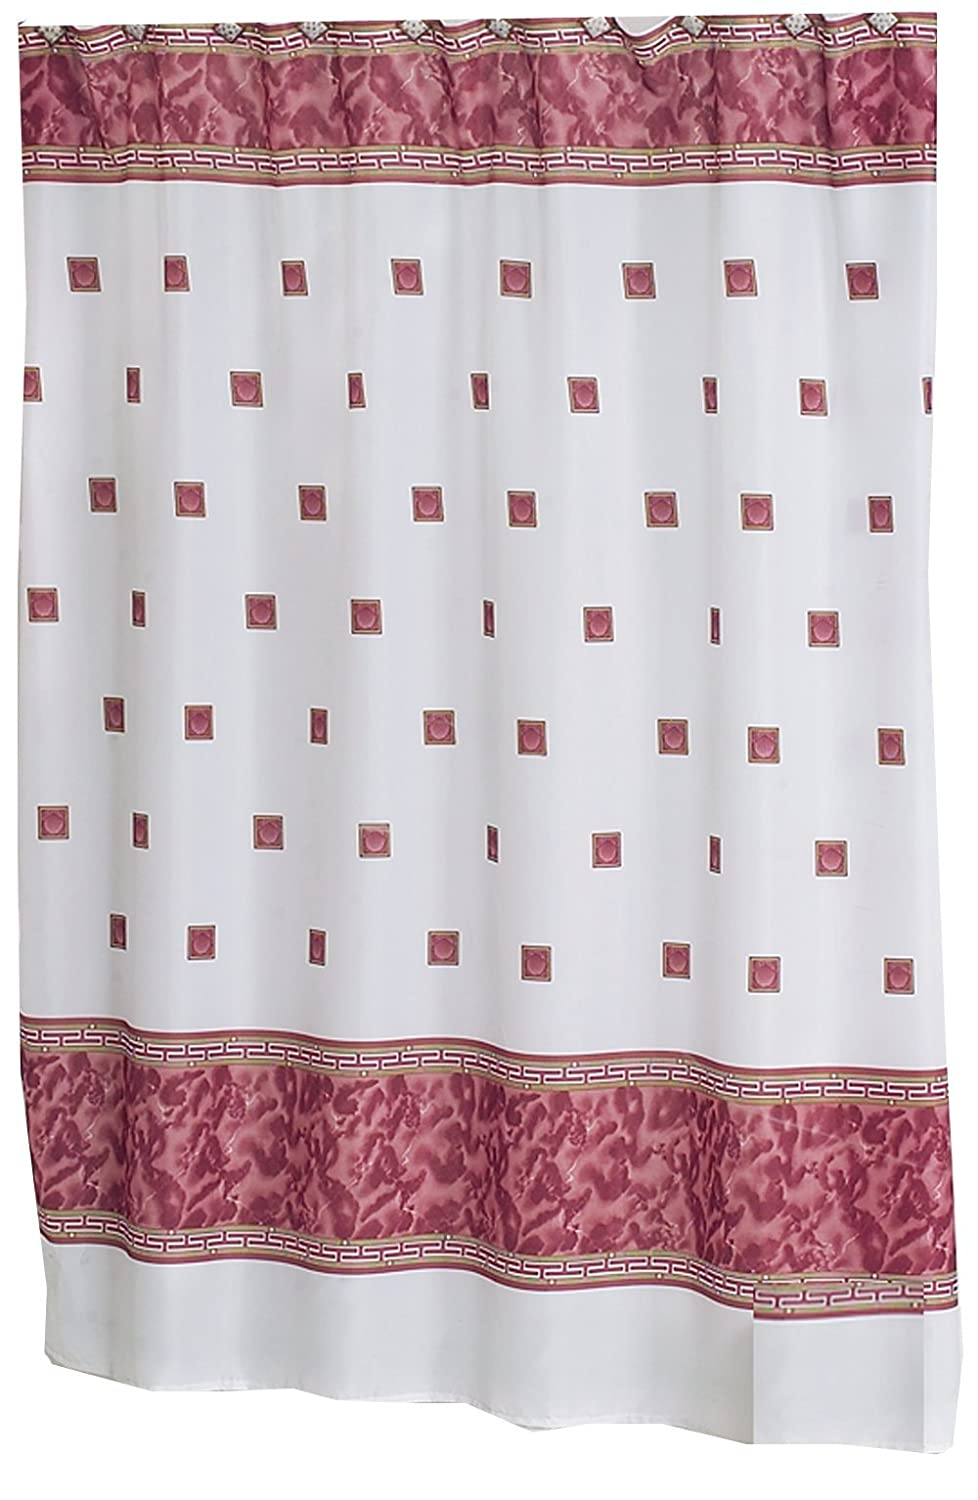 6 Ft Shower Curtain Part - 20: Amazon.com: Carnation Home Fashions Windsor Fabric Shower Curtain, Ivory:  Home U0026 Kitchen